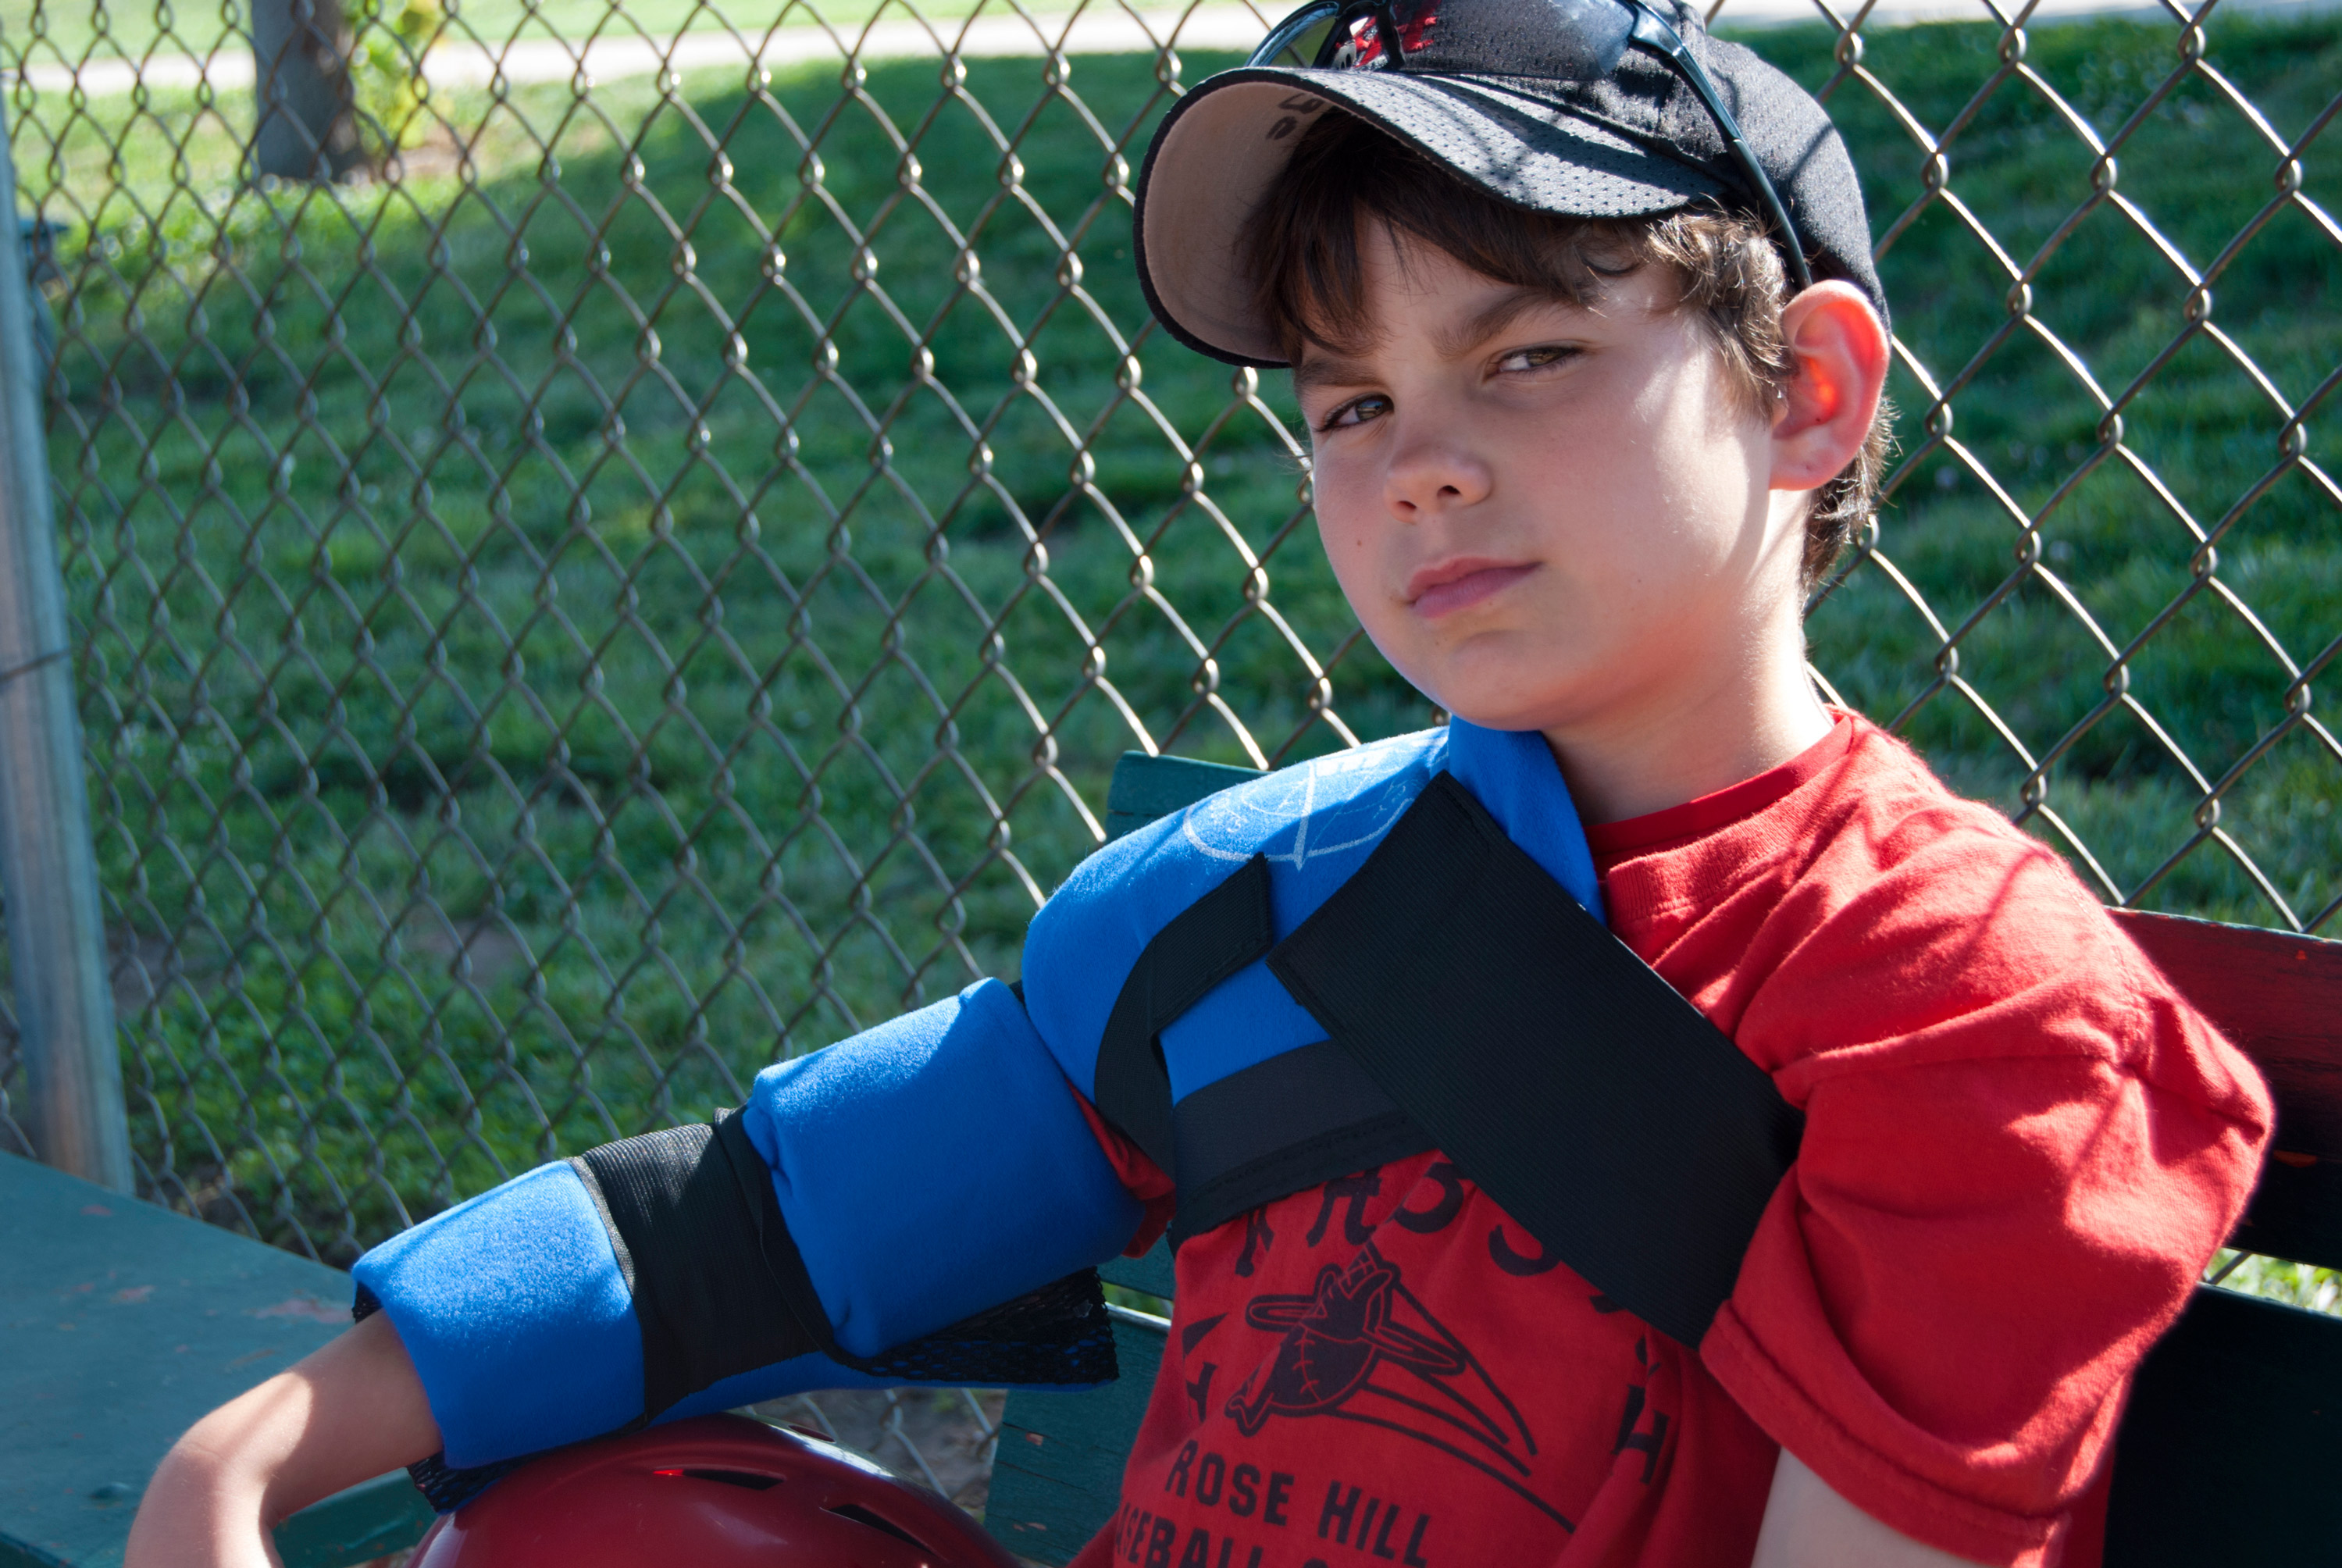 Youth Pitchers Shoulder & Elbow Ice Wrap- pi220 - Pro Ice, The Best Youth Pitchers Ice Wraps On The Planet!